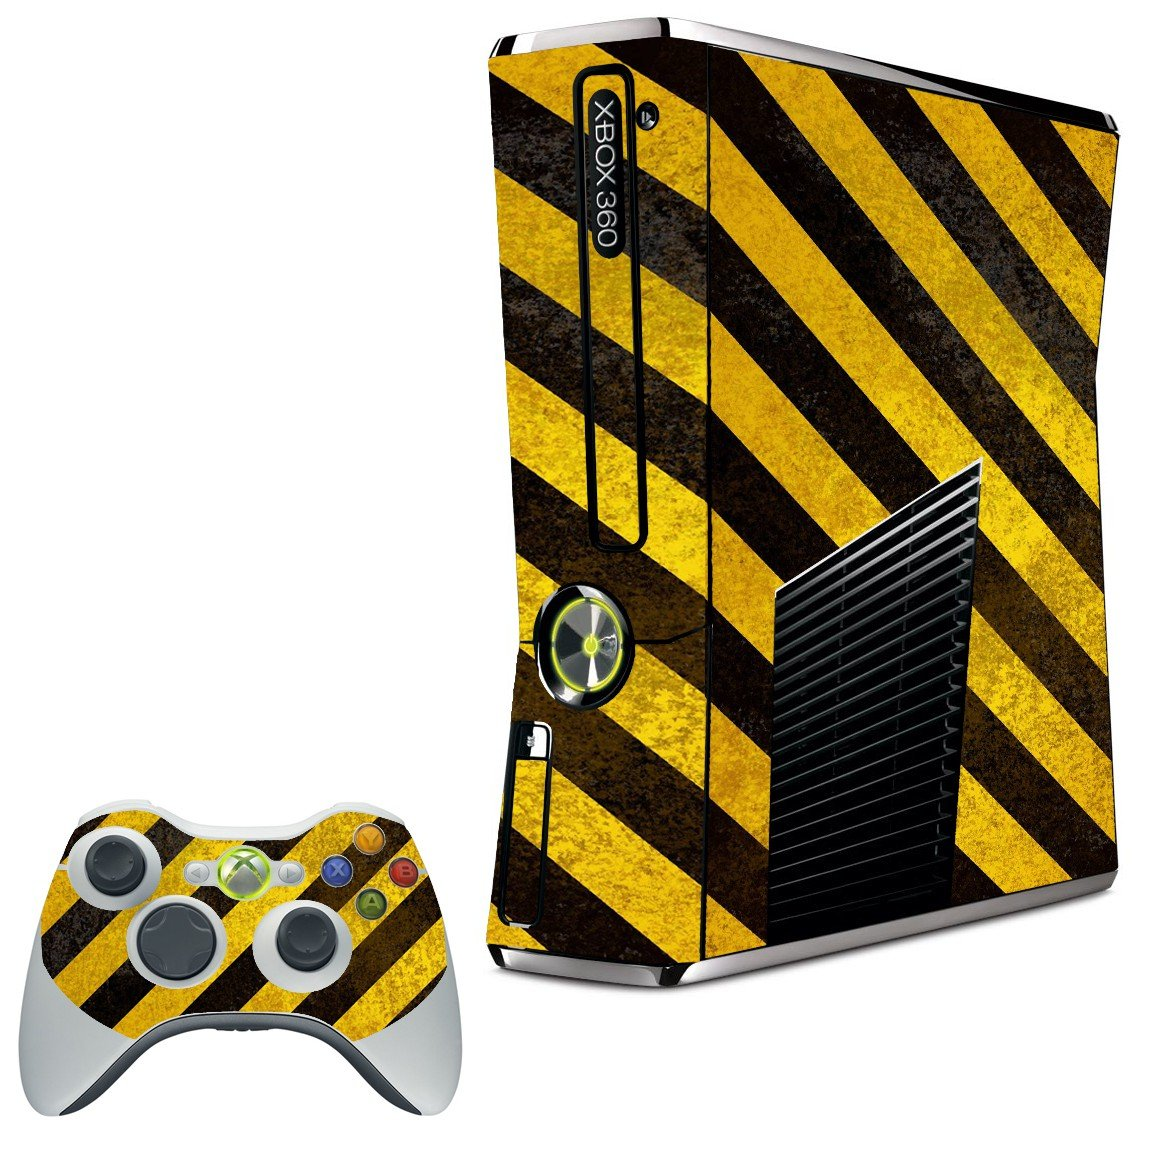 CAUTION STRIPES XBOX 360 SLIM GAME CONSOLE SKIN